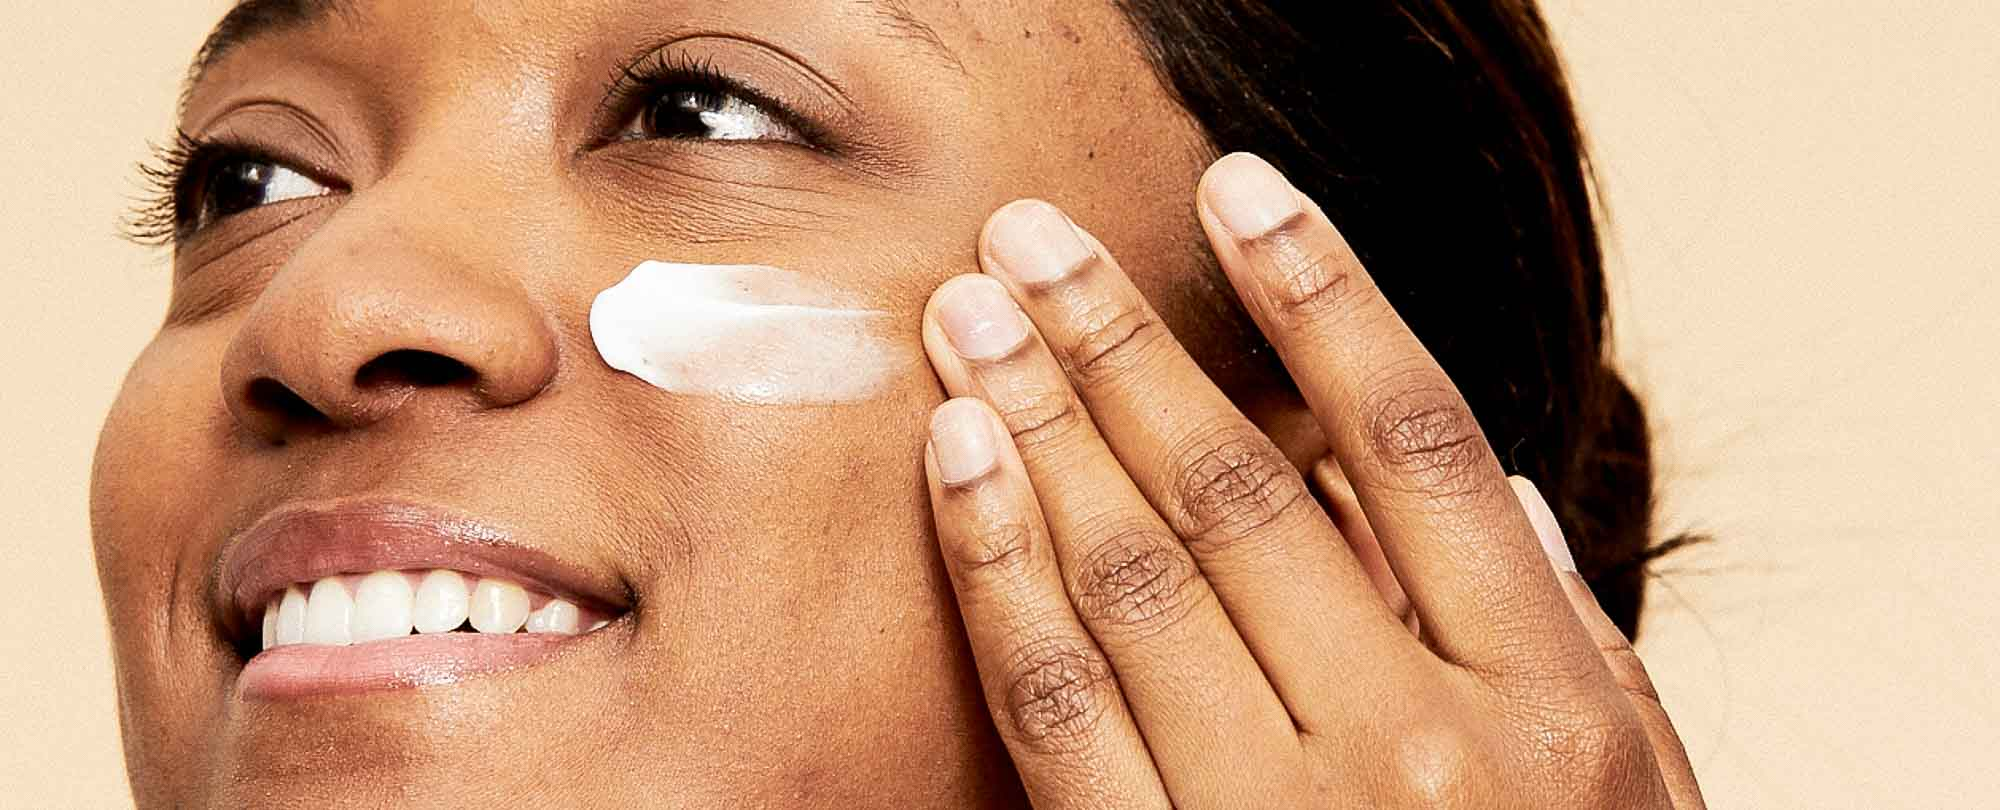 Blind Pimple: Get Rid of It Safely